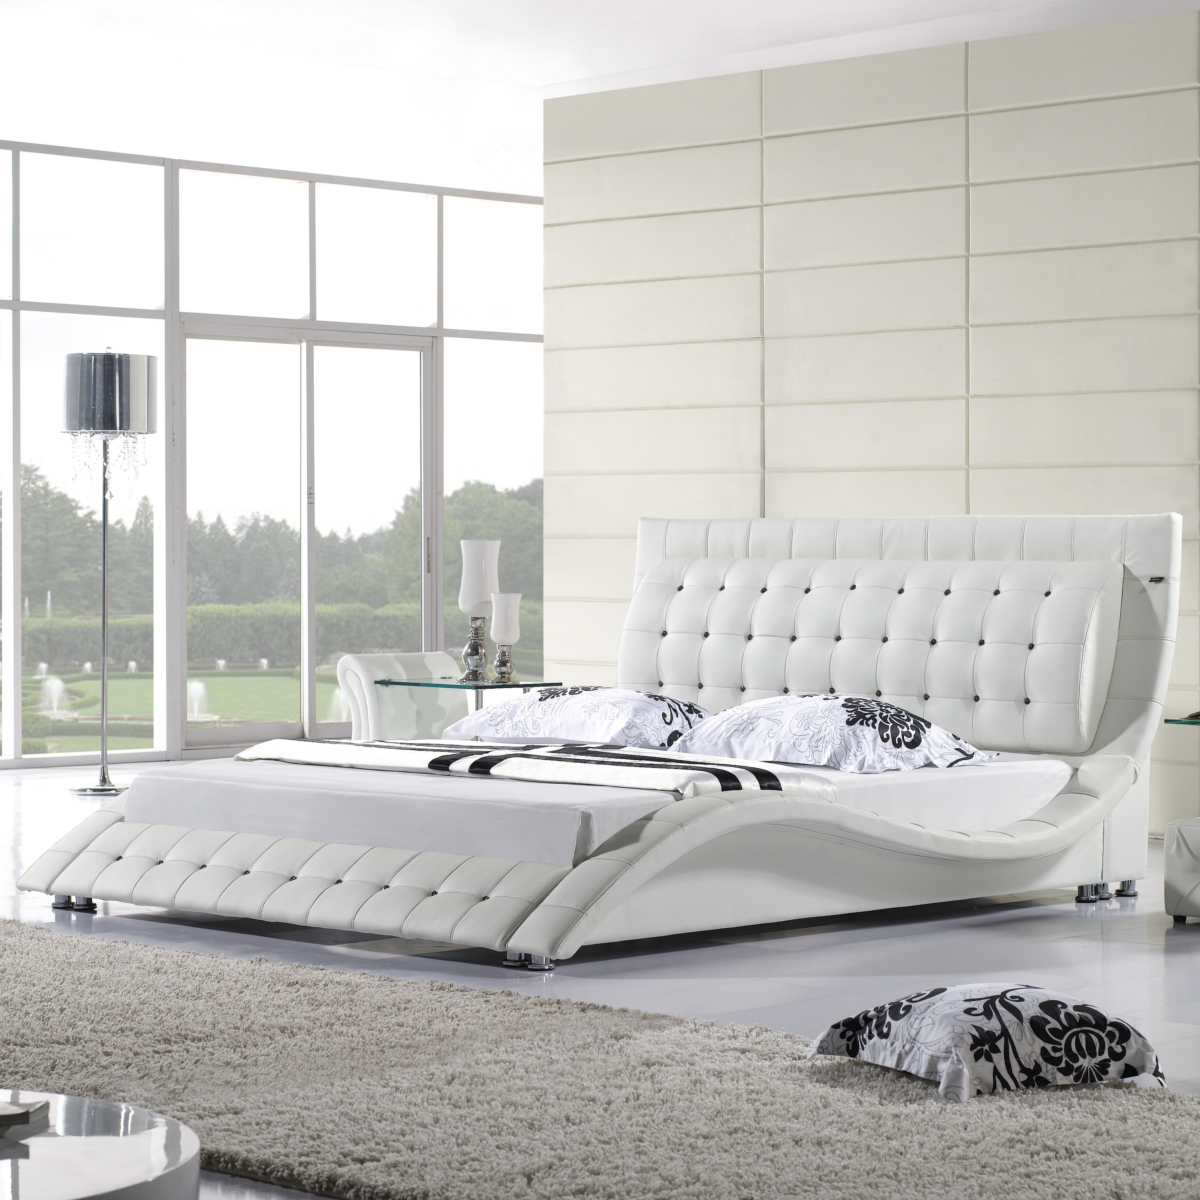 polsterbett lederbett bettgestell bett tropez diamond 160x200 doppelbett i10w ebay. Black Bedroom Furniture Sets. Home Design Ideas